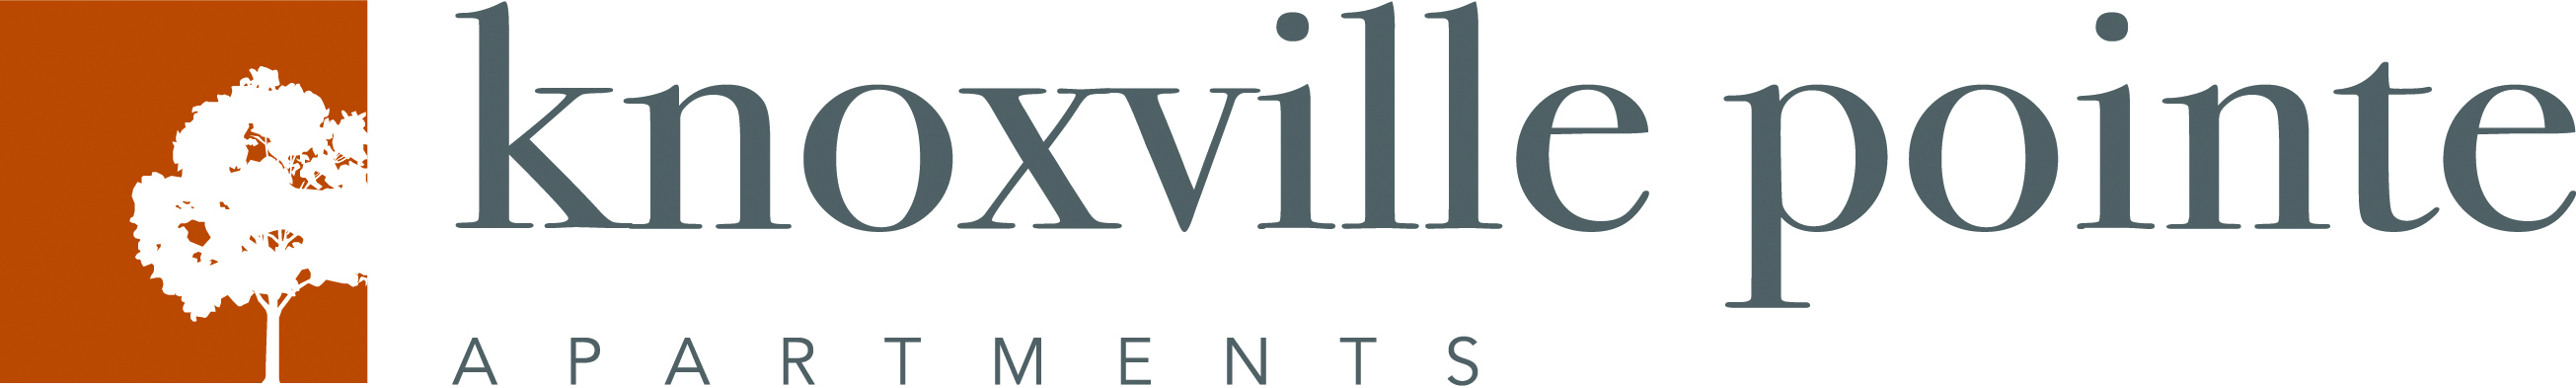 Knoxville Pointe Apartments Logo